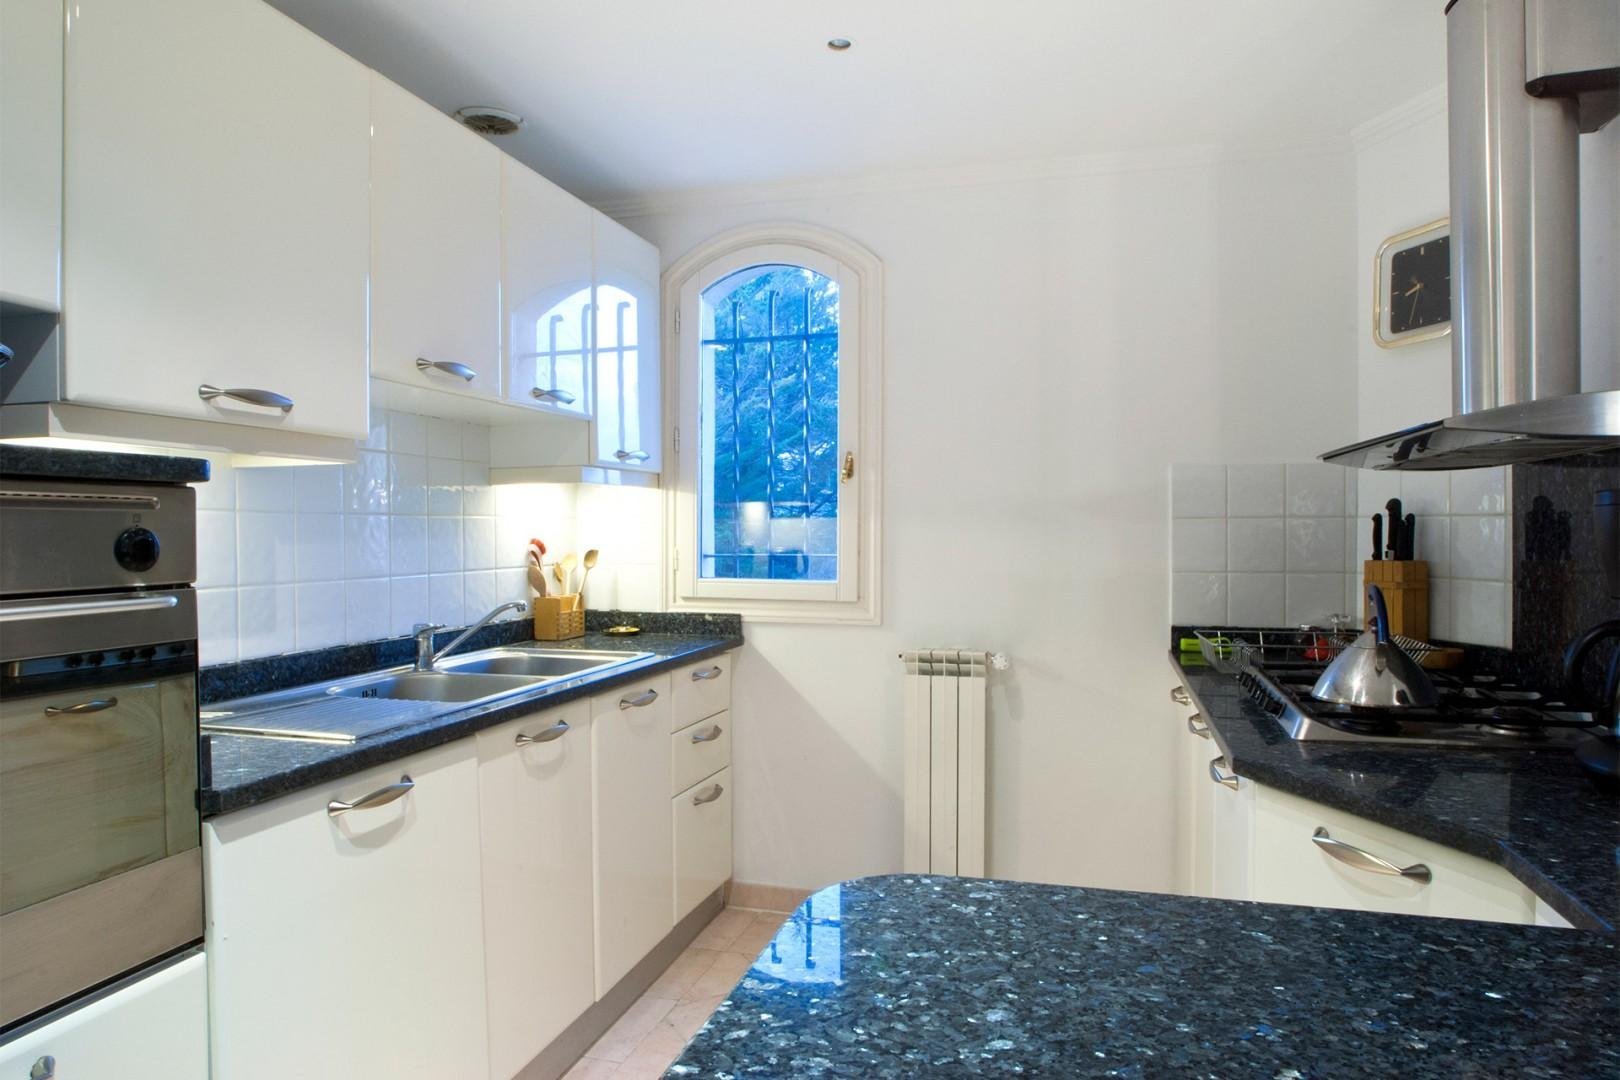 Main kitchen, fully equipped with everything you need